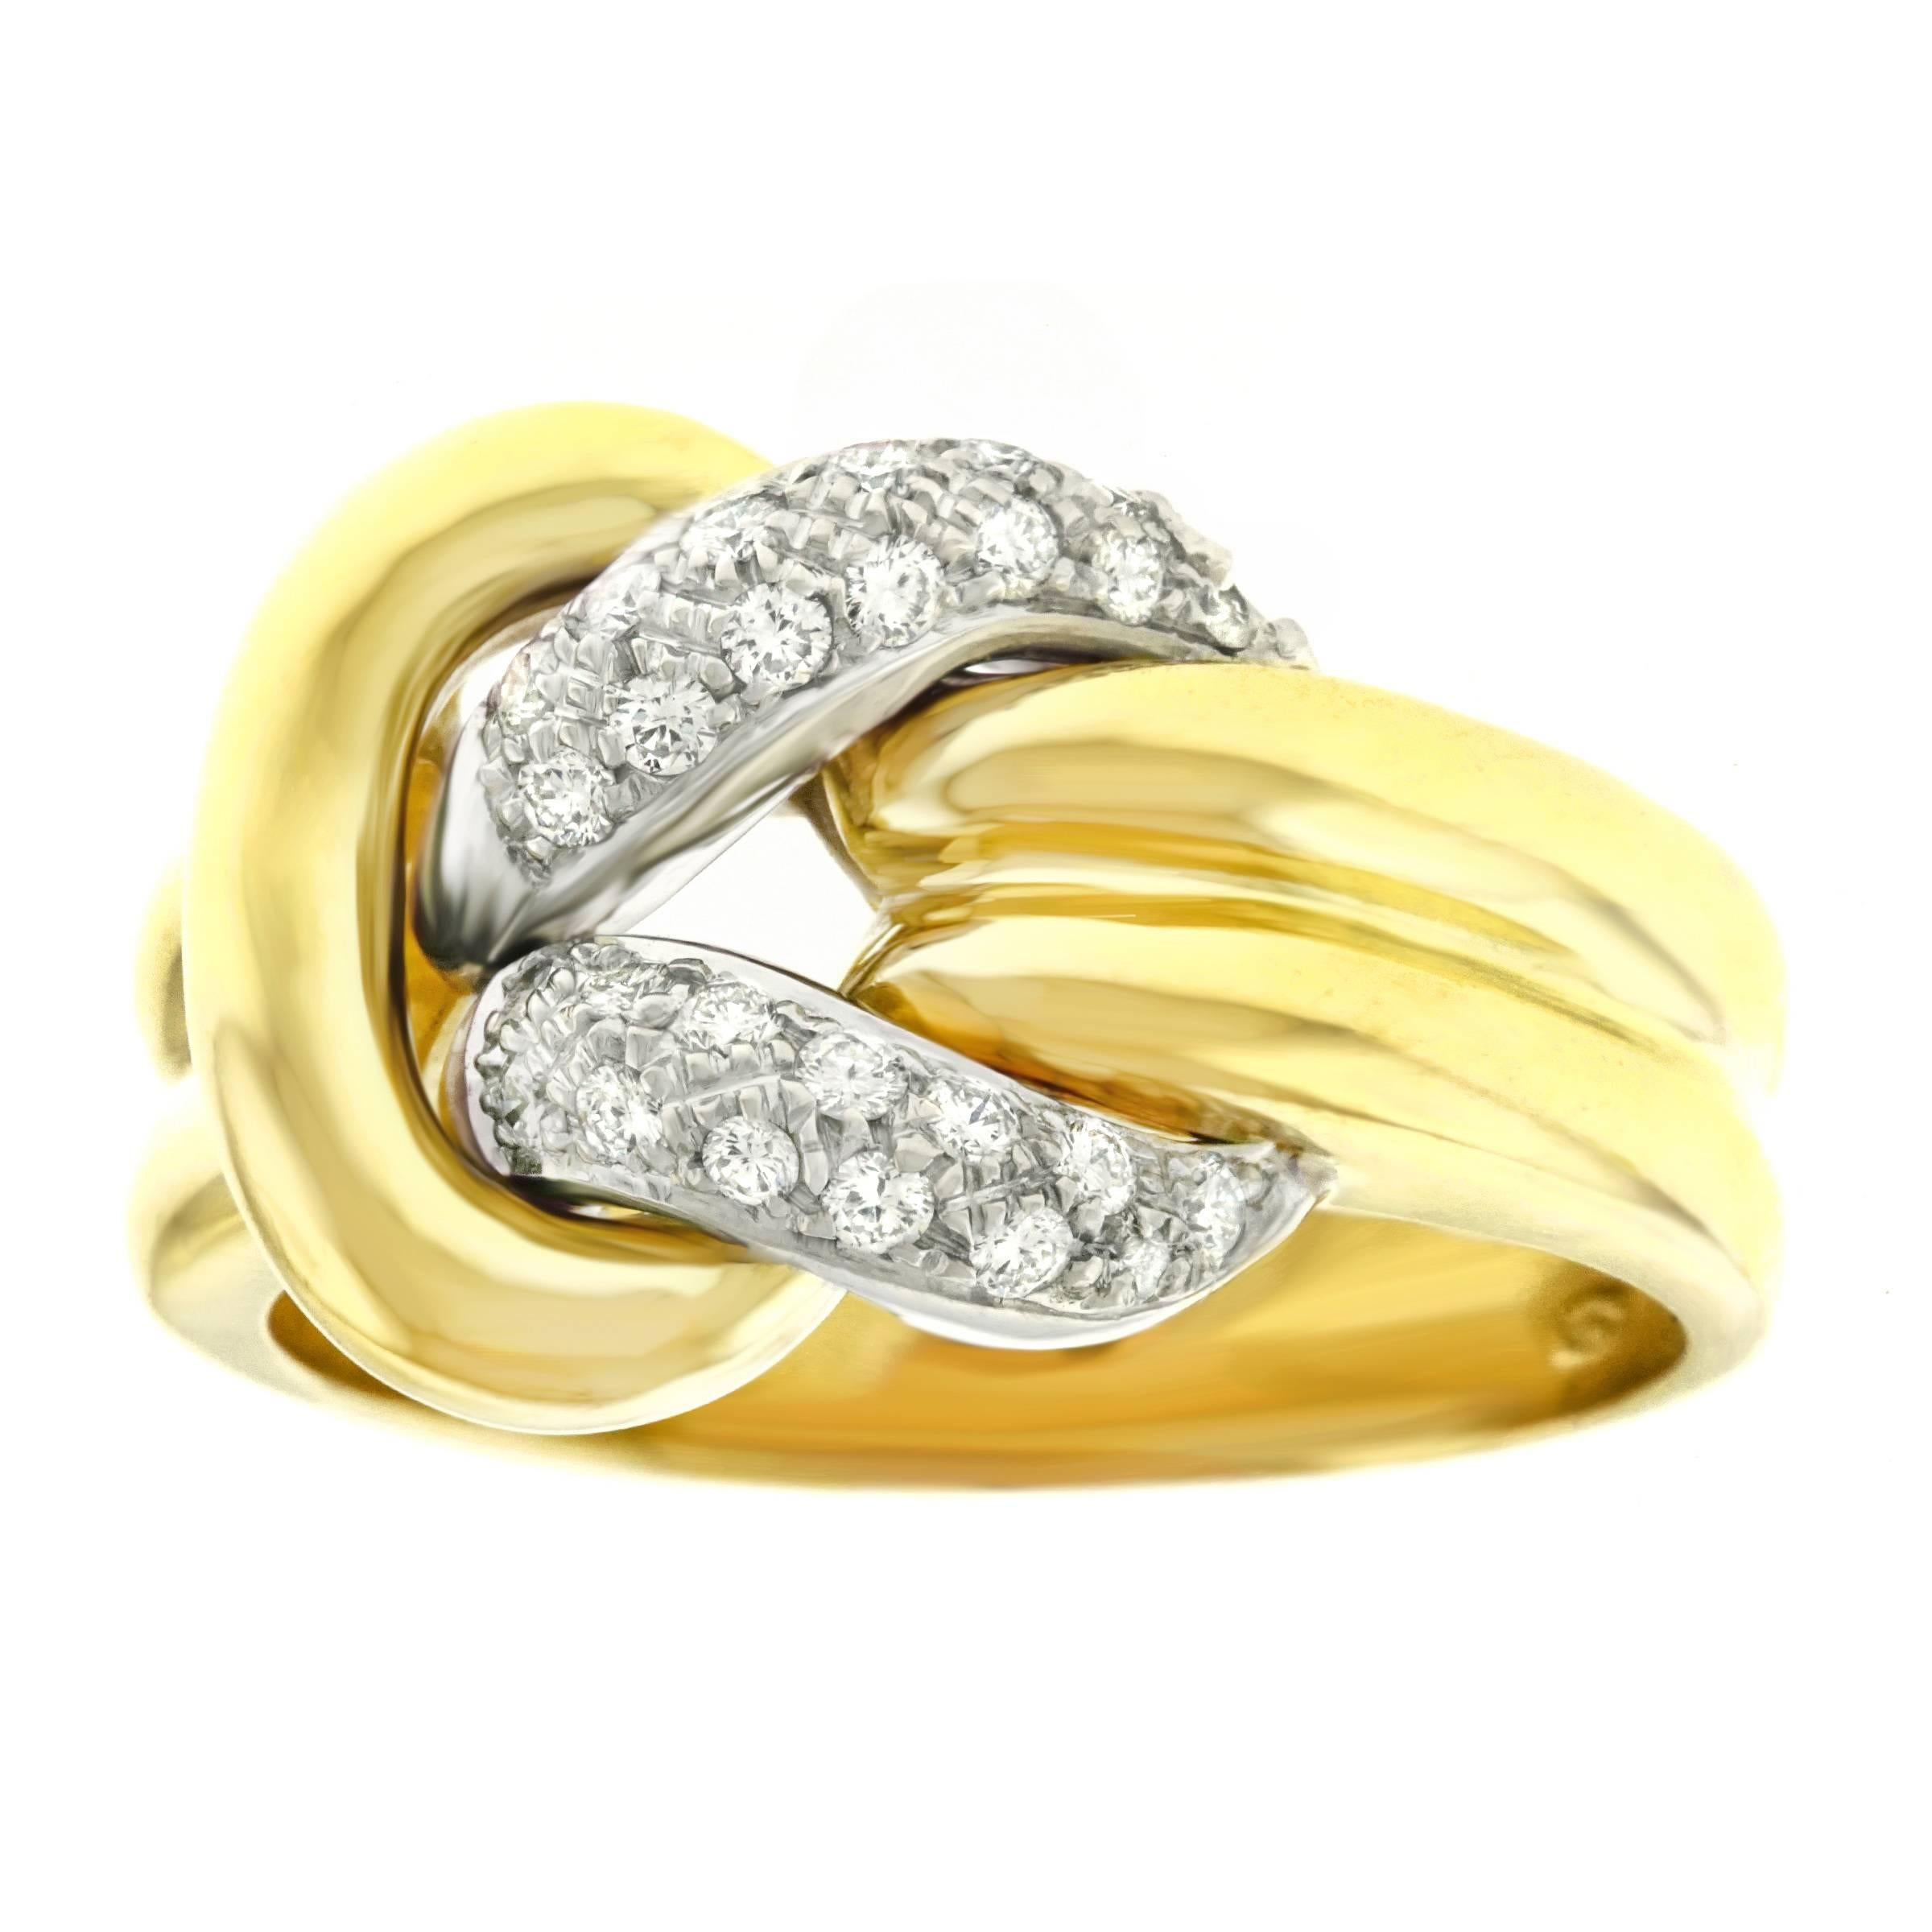 gold contact okg ring knot bold jewelry watches product diamond blog love